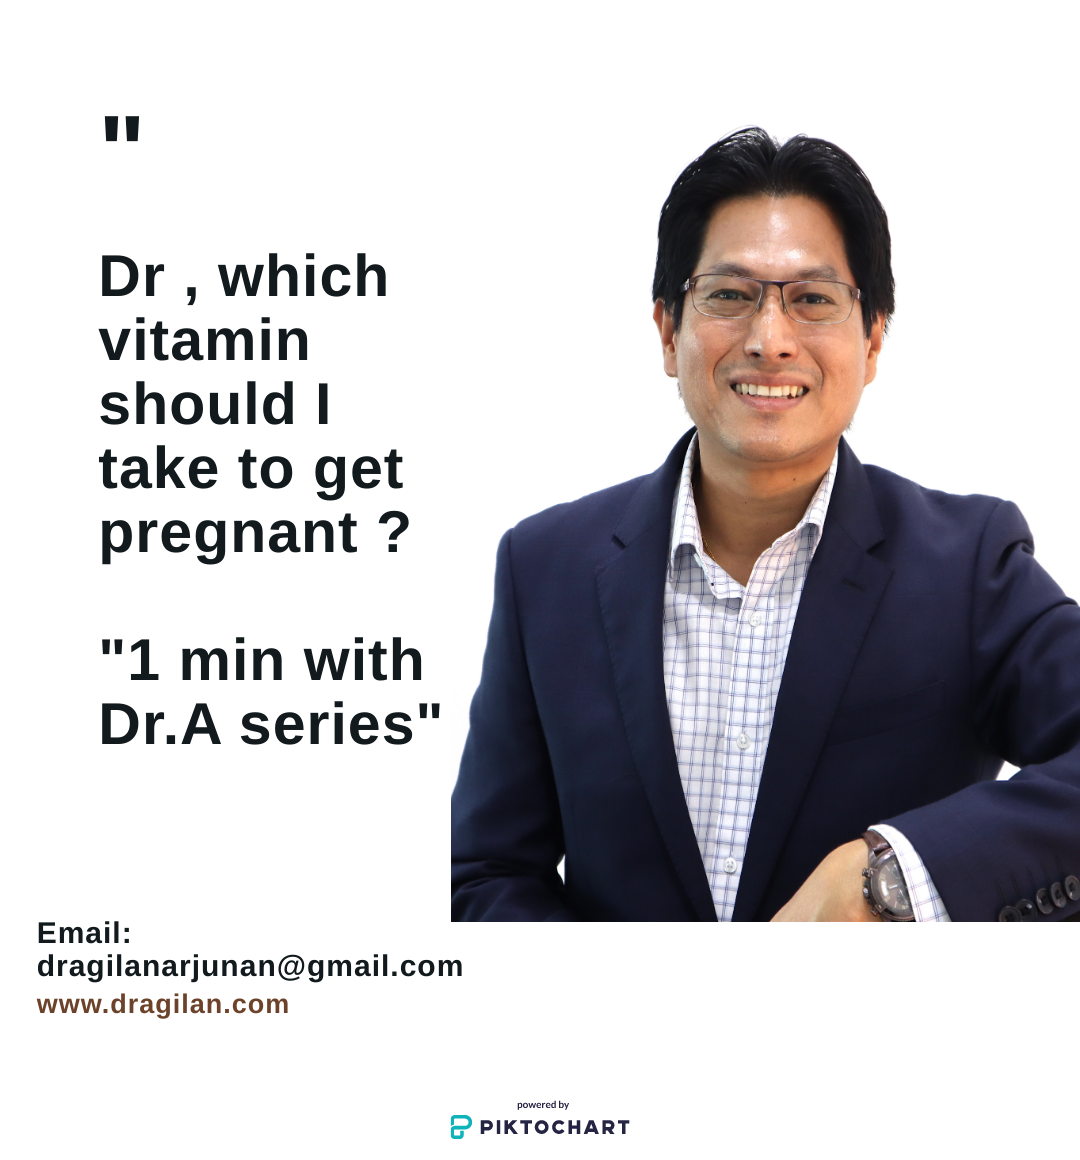 Vitamin & Fertility : 1 Min with Dr.A series